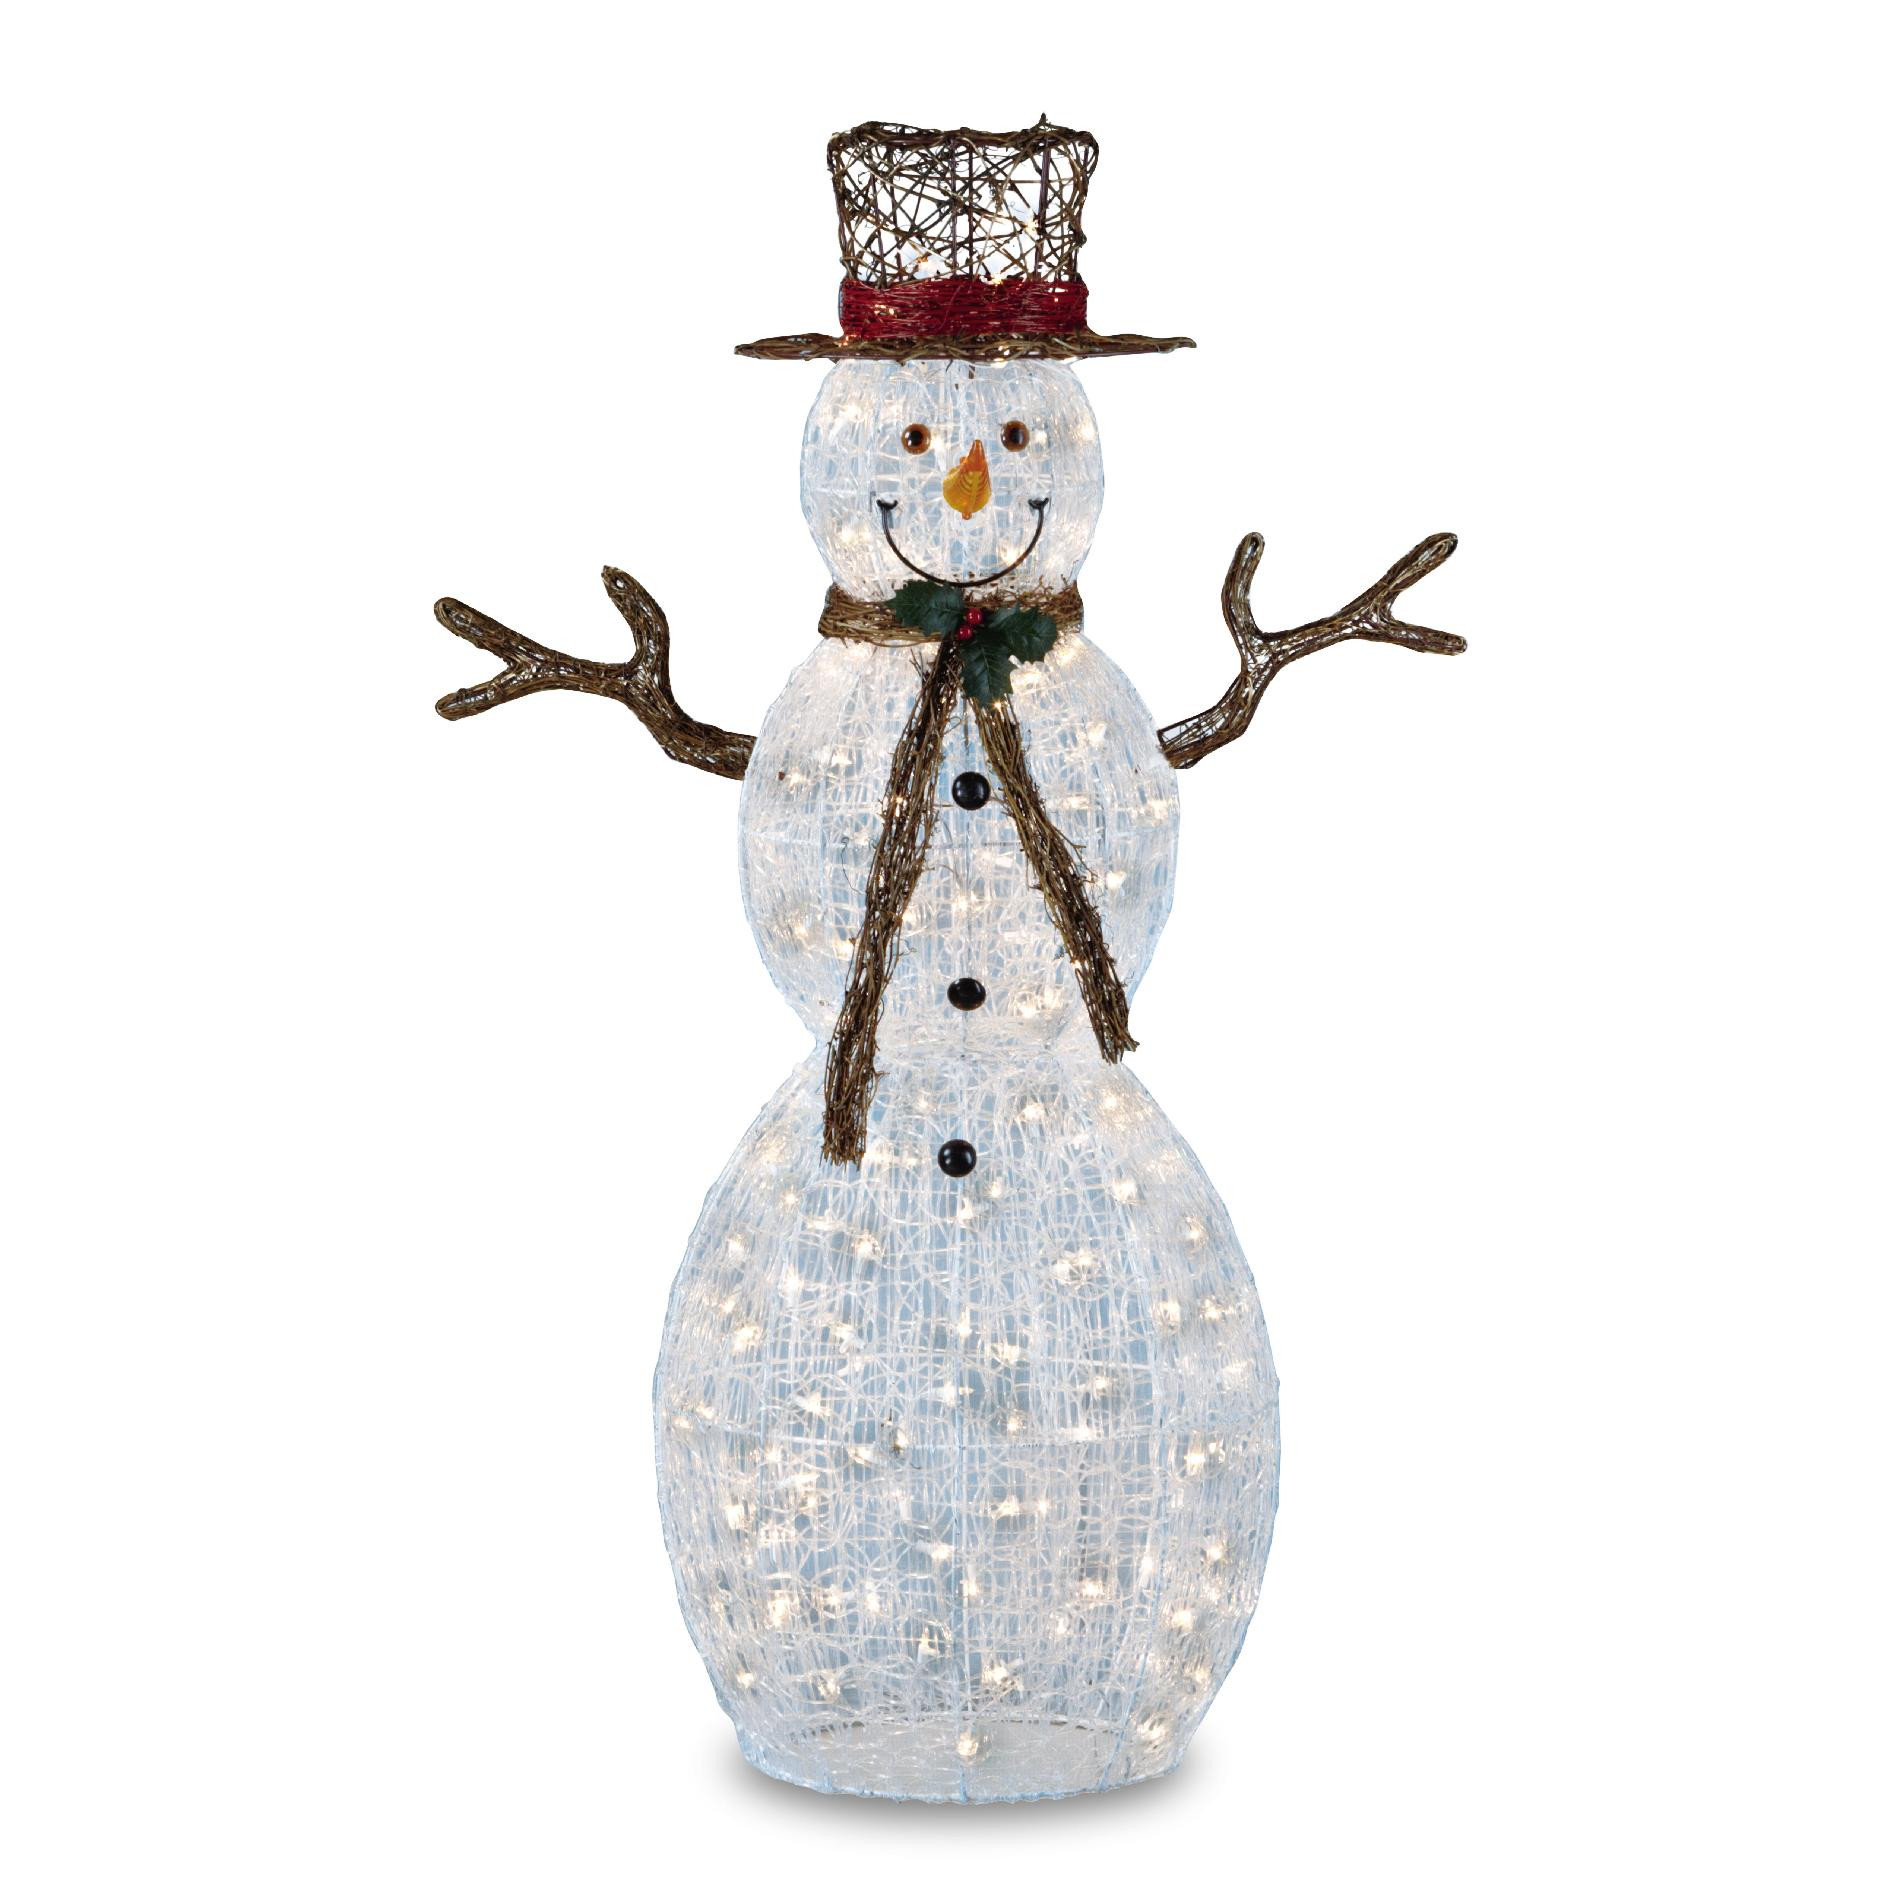 Inspirational Trimming Traditions 150 Clear Light Icy Snowman Christmas Christmas Snowman Decorations Of Adorable 41 Models Christmas Snowman Decorations